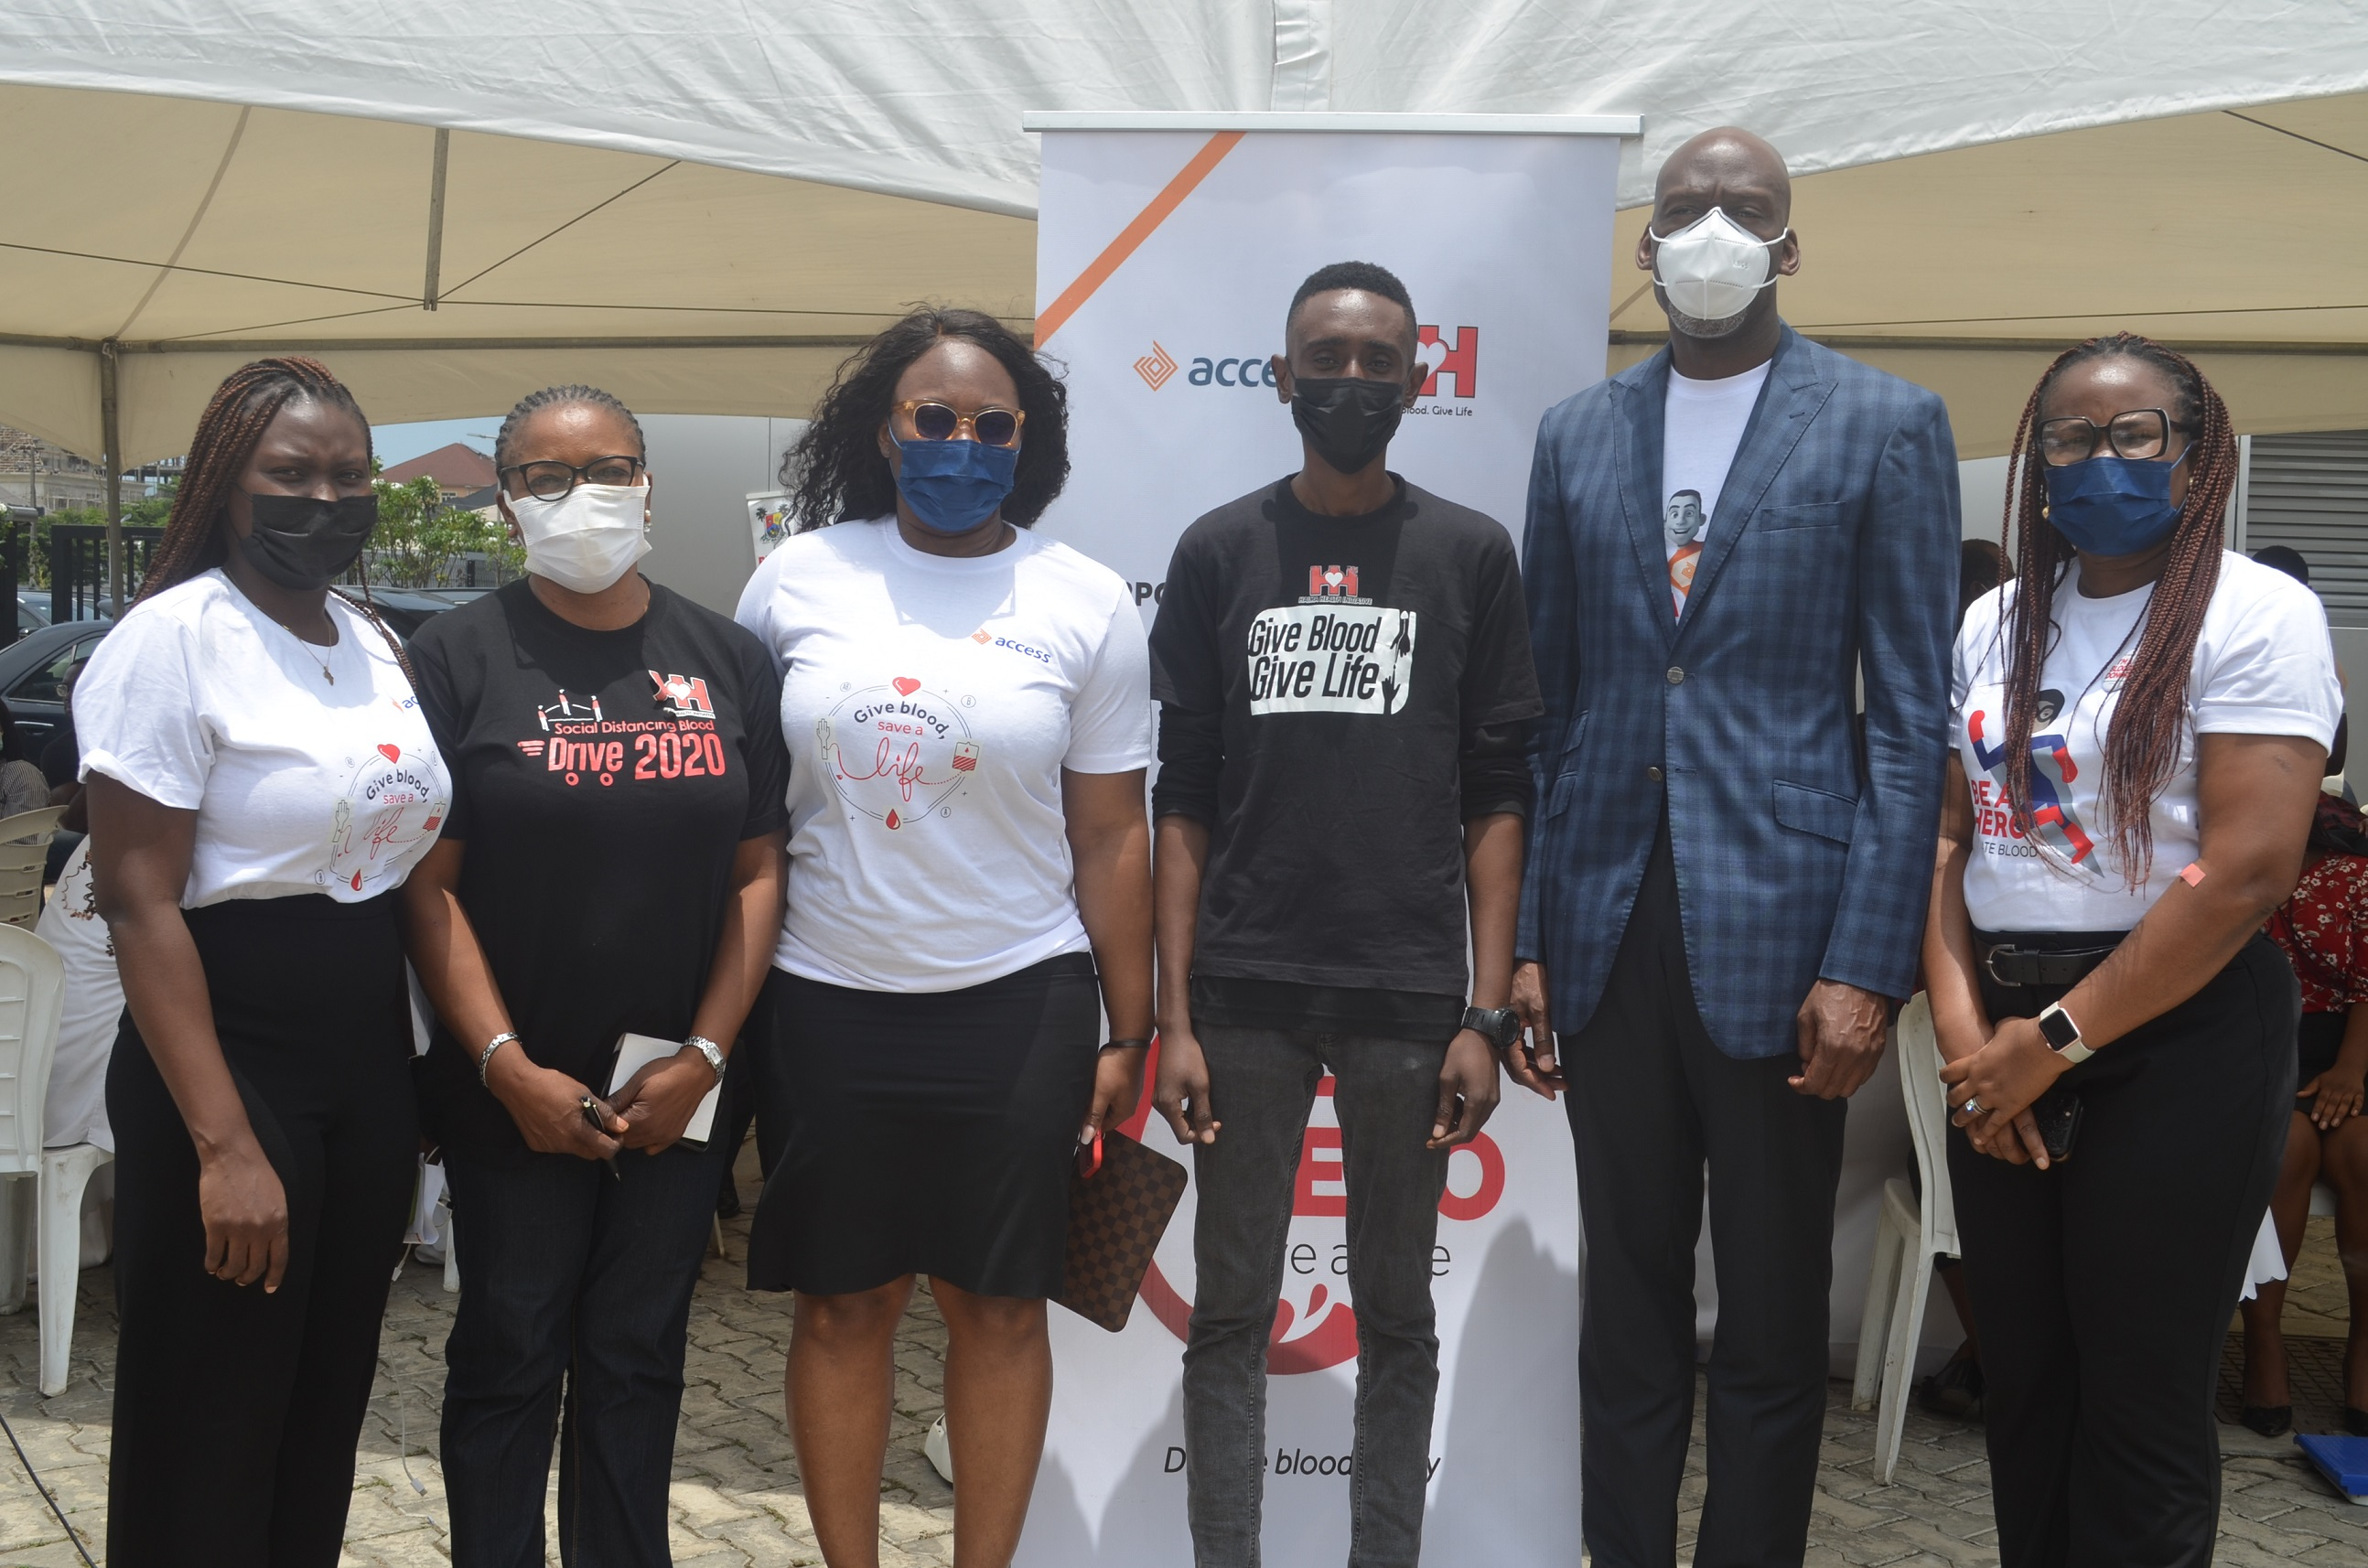 Access Bank spotlights issues around blood donation with EVS